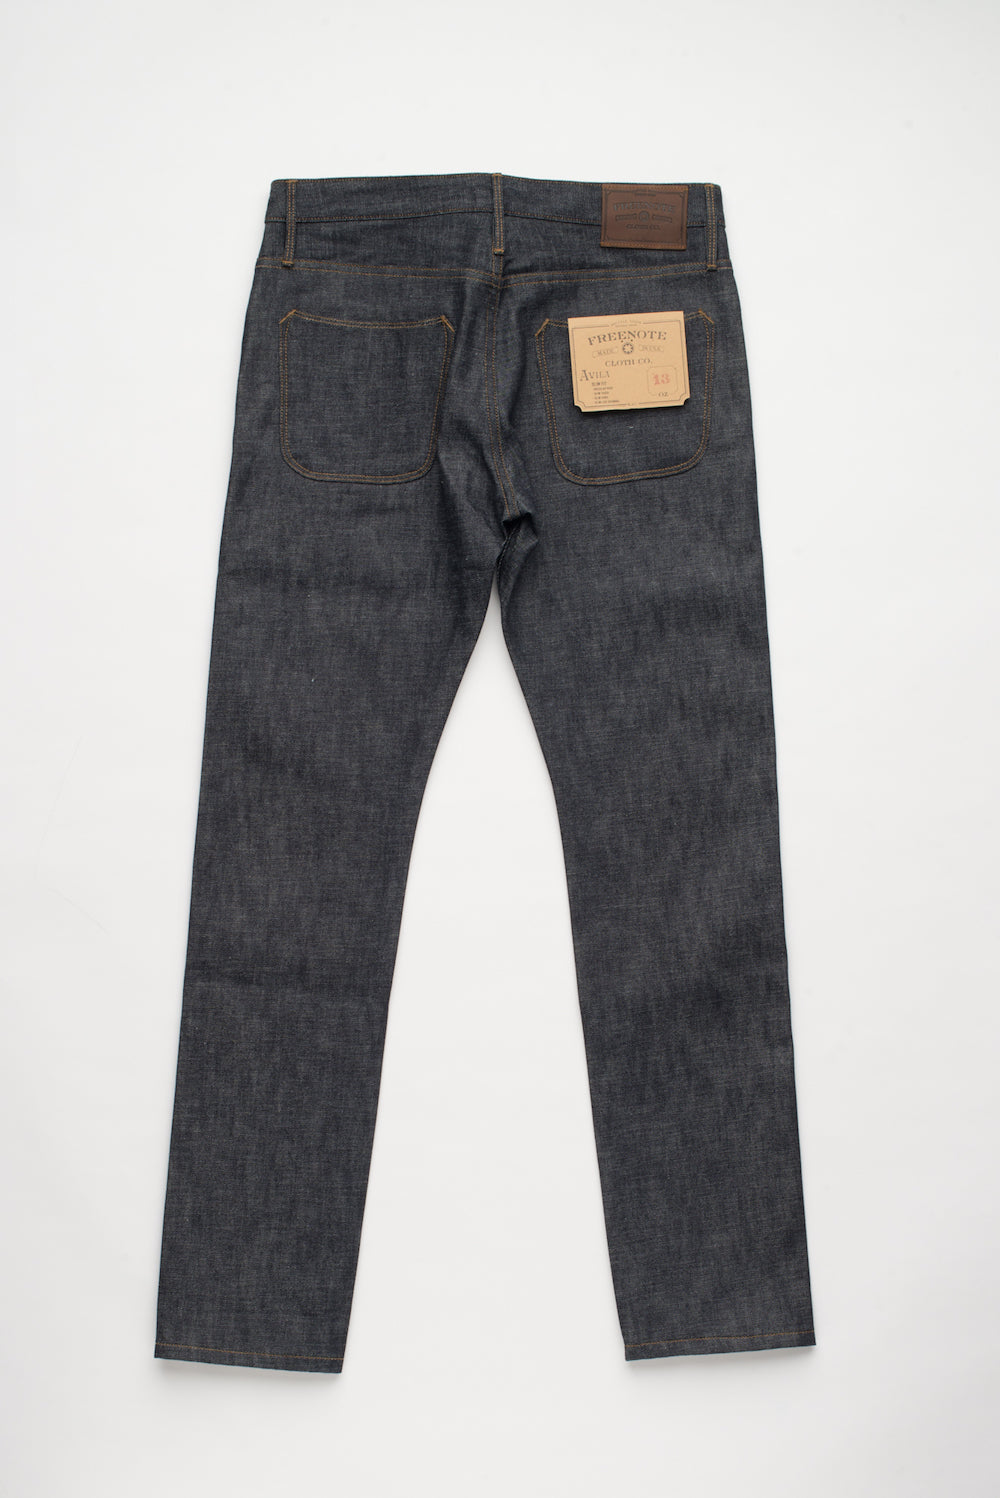 Freenote Cloth | Avila 13 oz Natural Indigo (bs) | $250